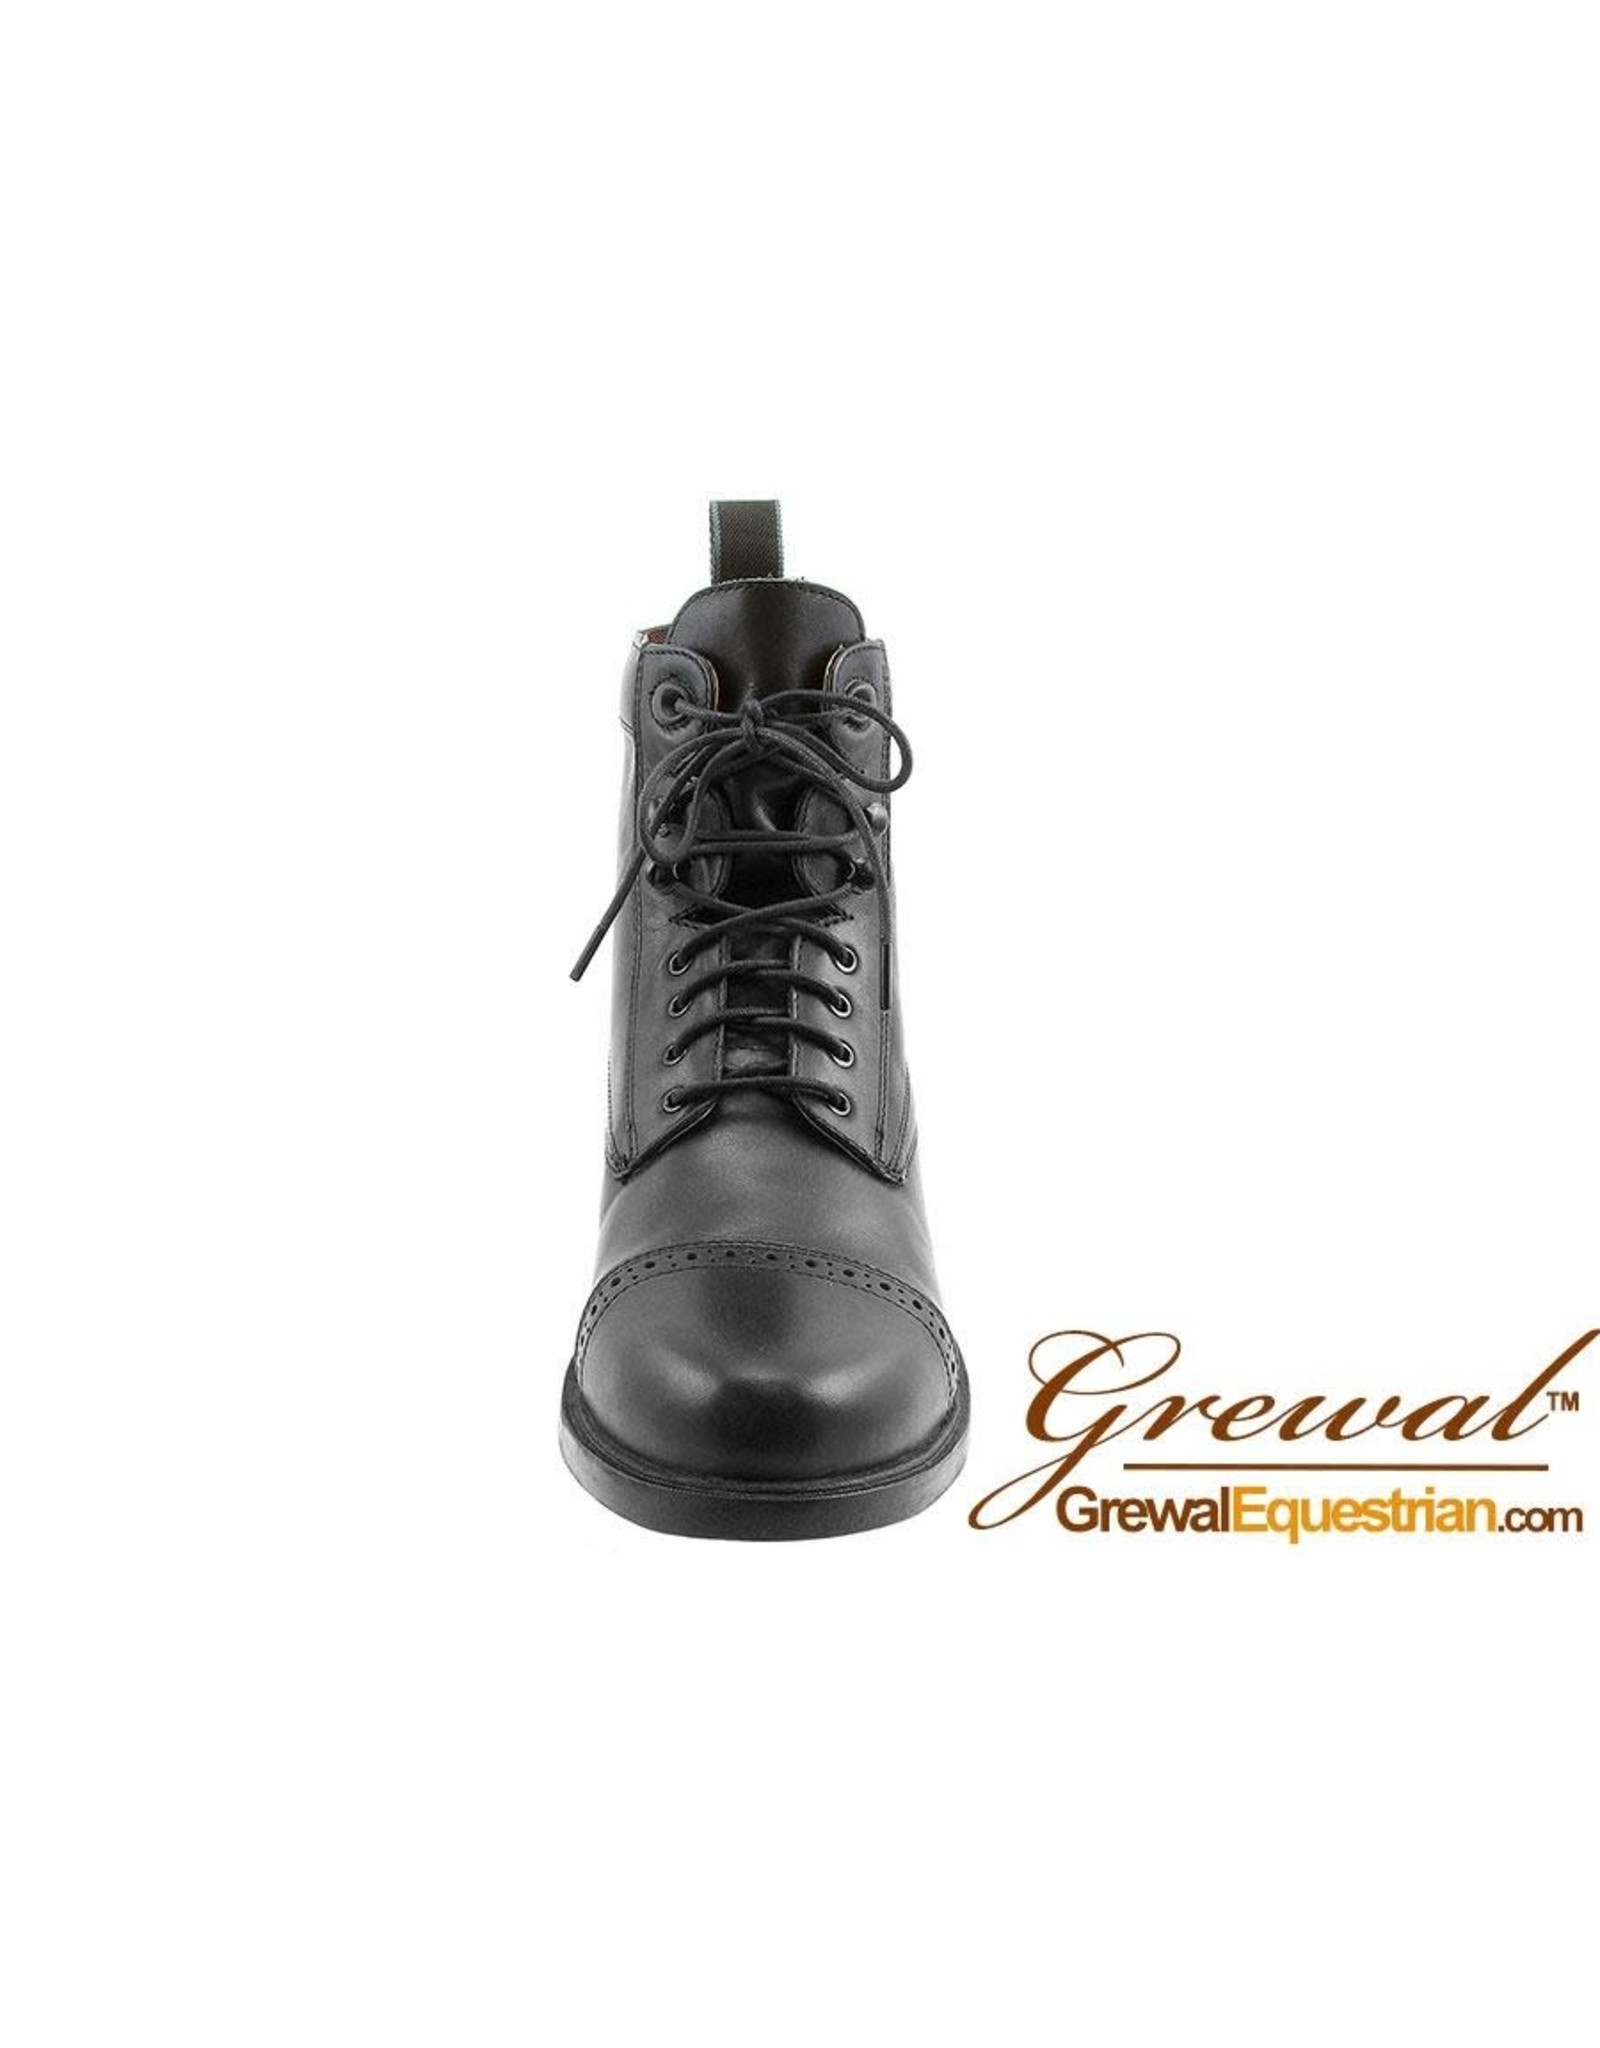 Grewal Paddock Lace-Up Leather